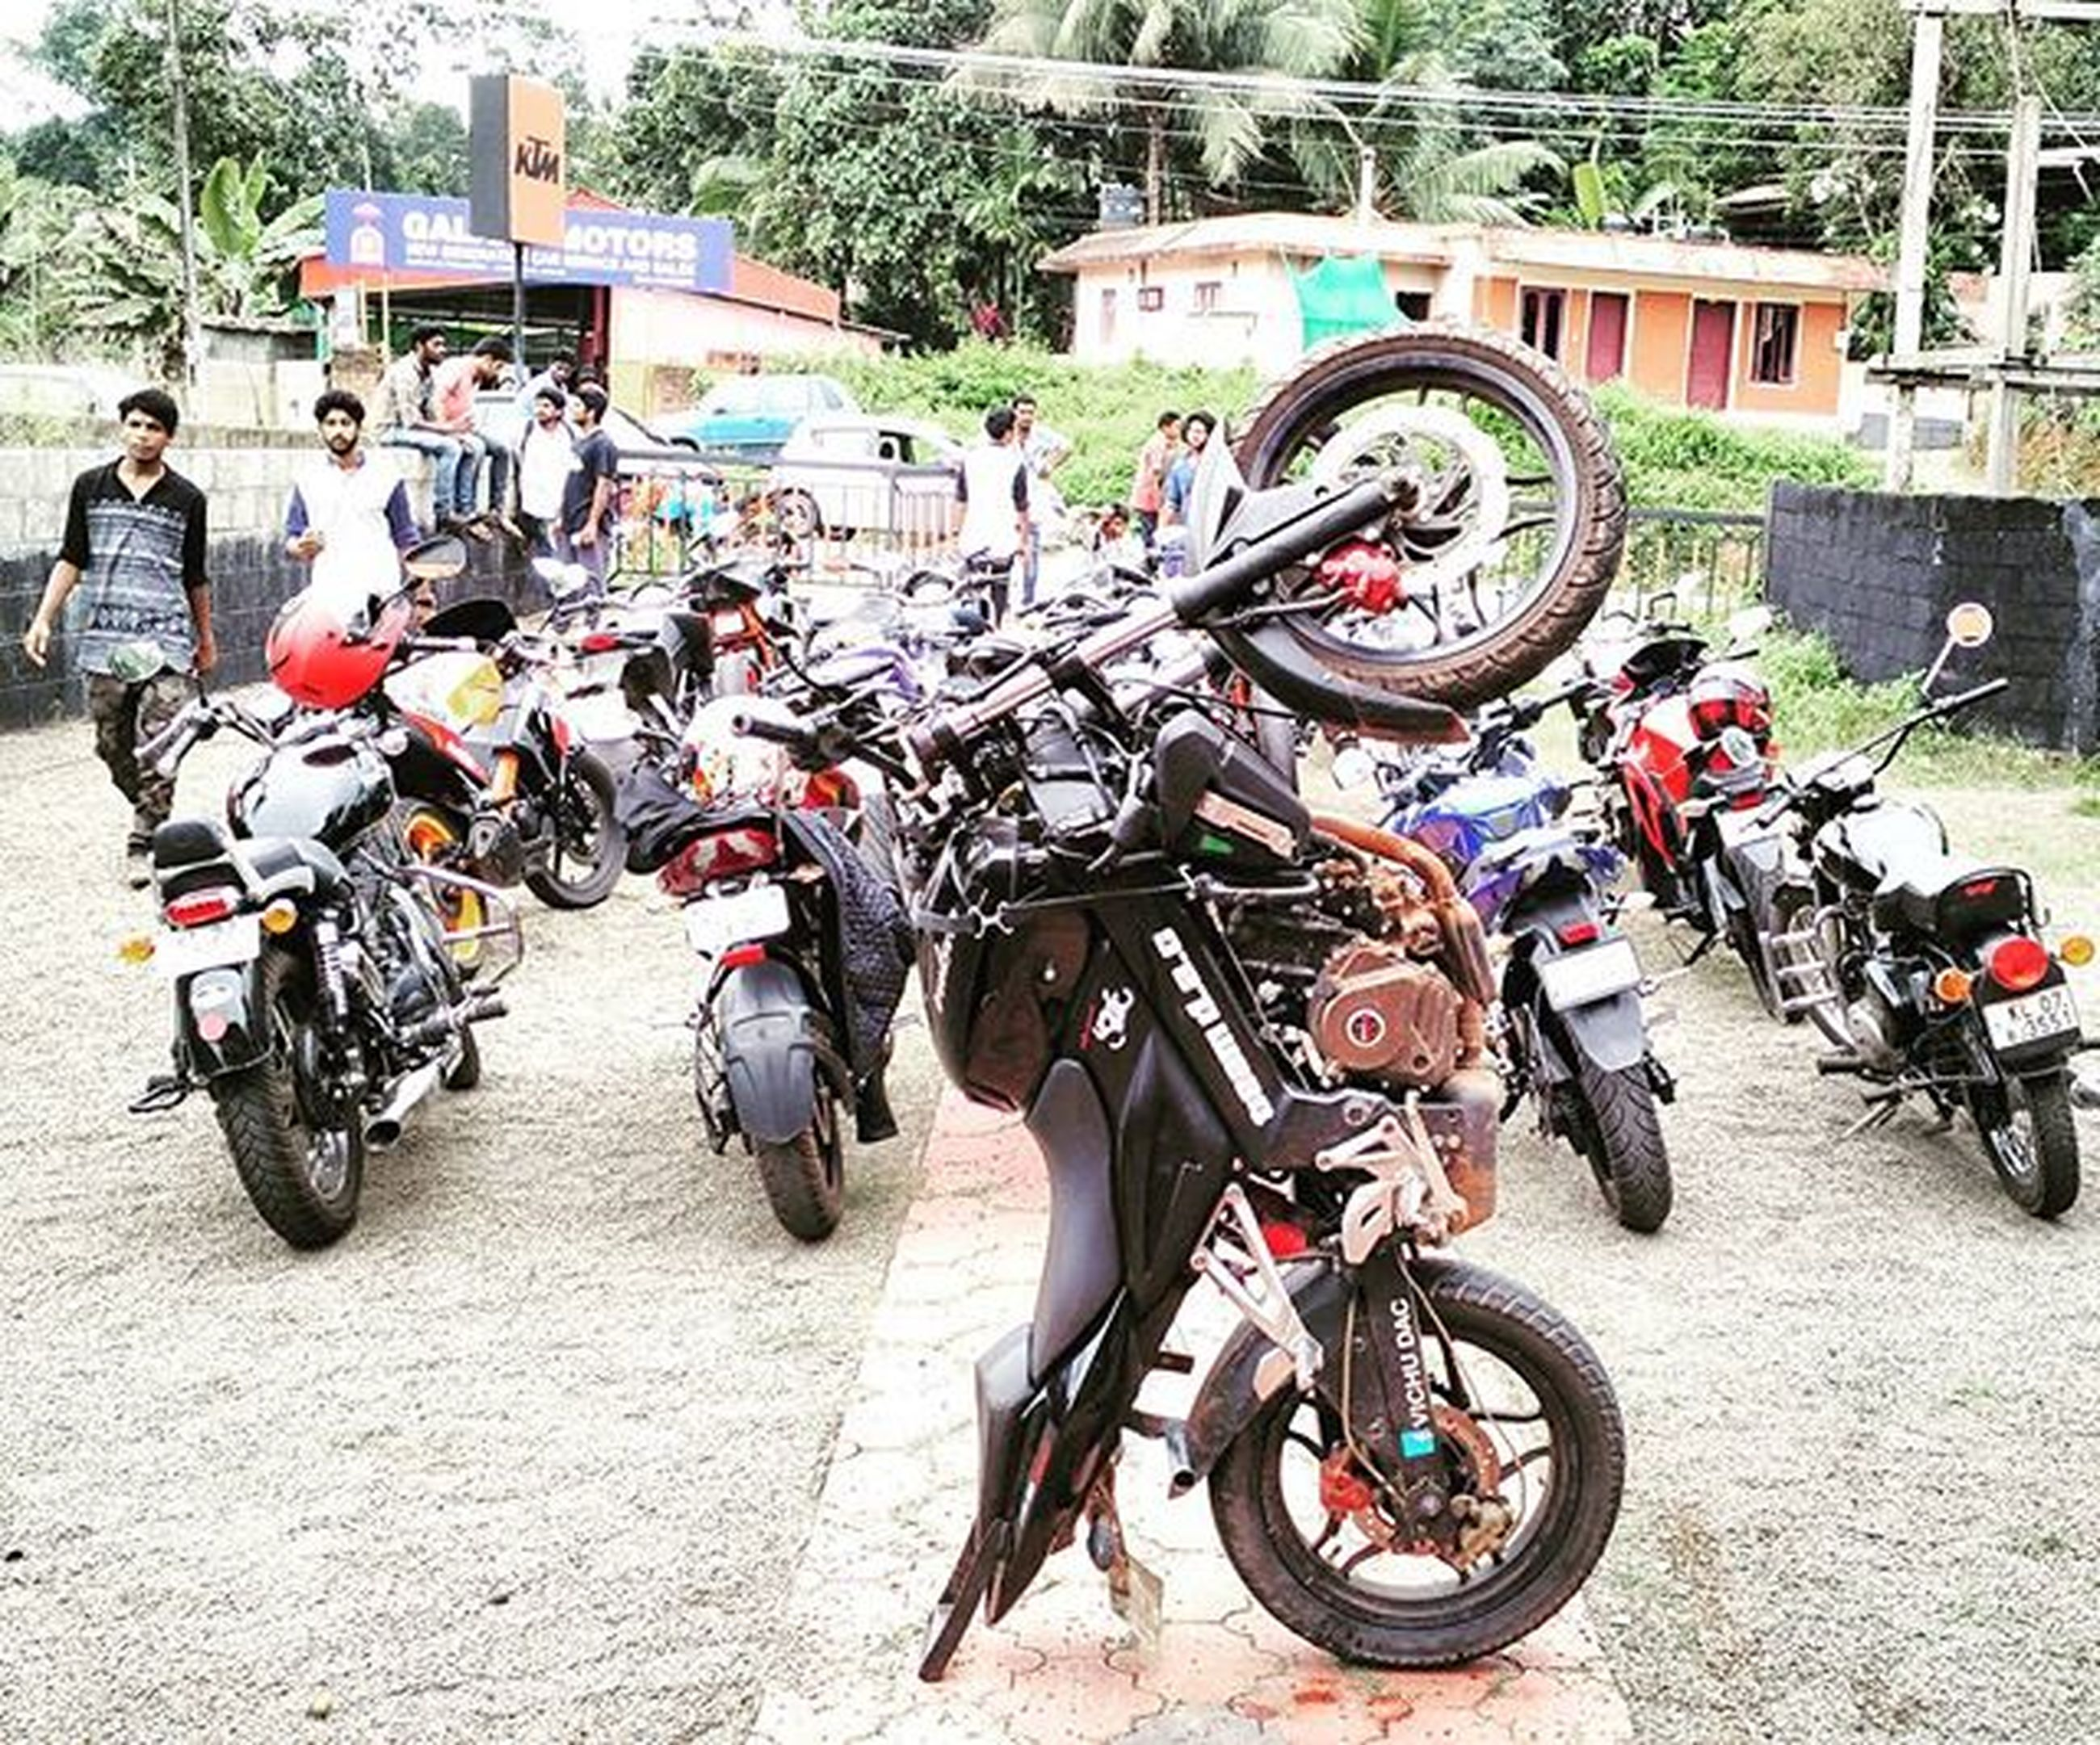 bicycle, transportation, mode of transport, land vehicle, stationary, parking, parked, men, large group of people, street, motorcycle, travel, riding, person, road, day, lifestyles, parking lot, mixed age range